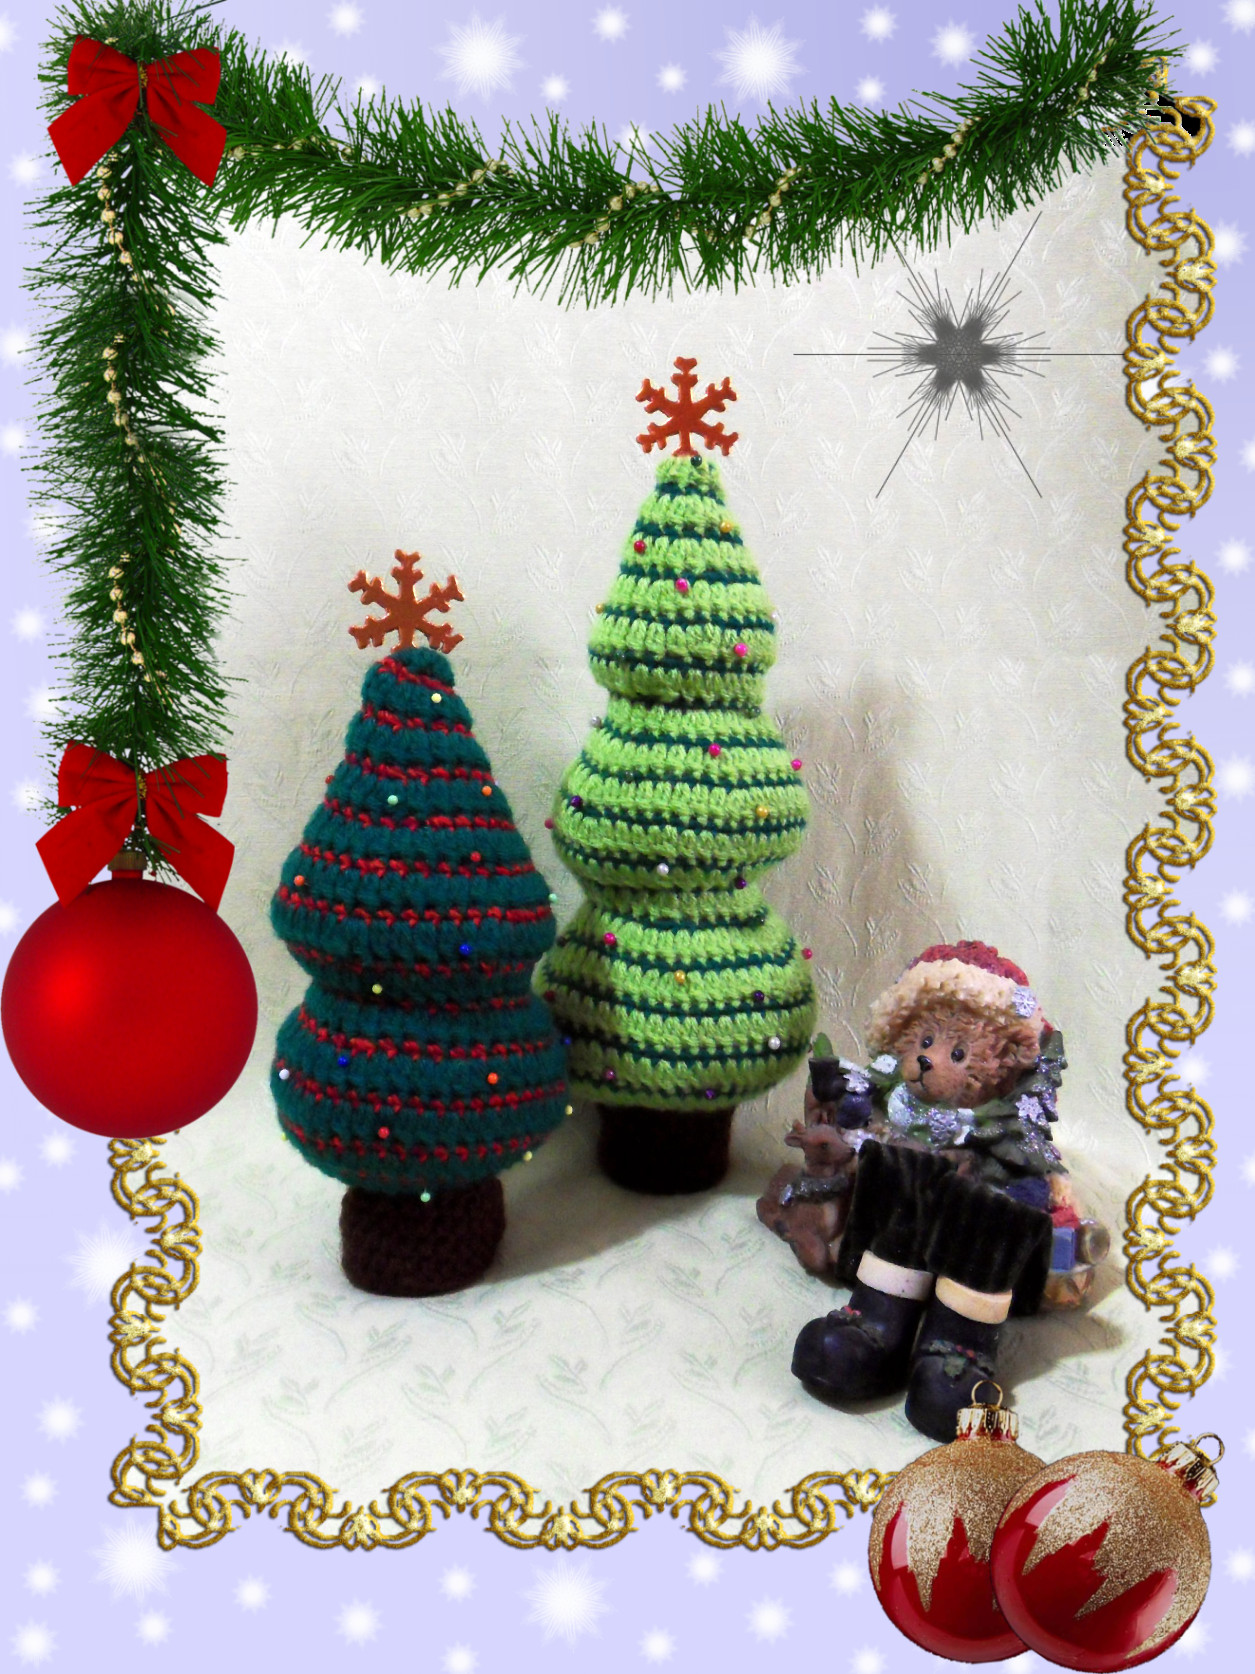 Beautiful Crochet Patterns Christmas Trees – Crochet Club Crochet Christmas Trees Of Marvelous 46 Ideas Crochet Christmas Trees